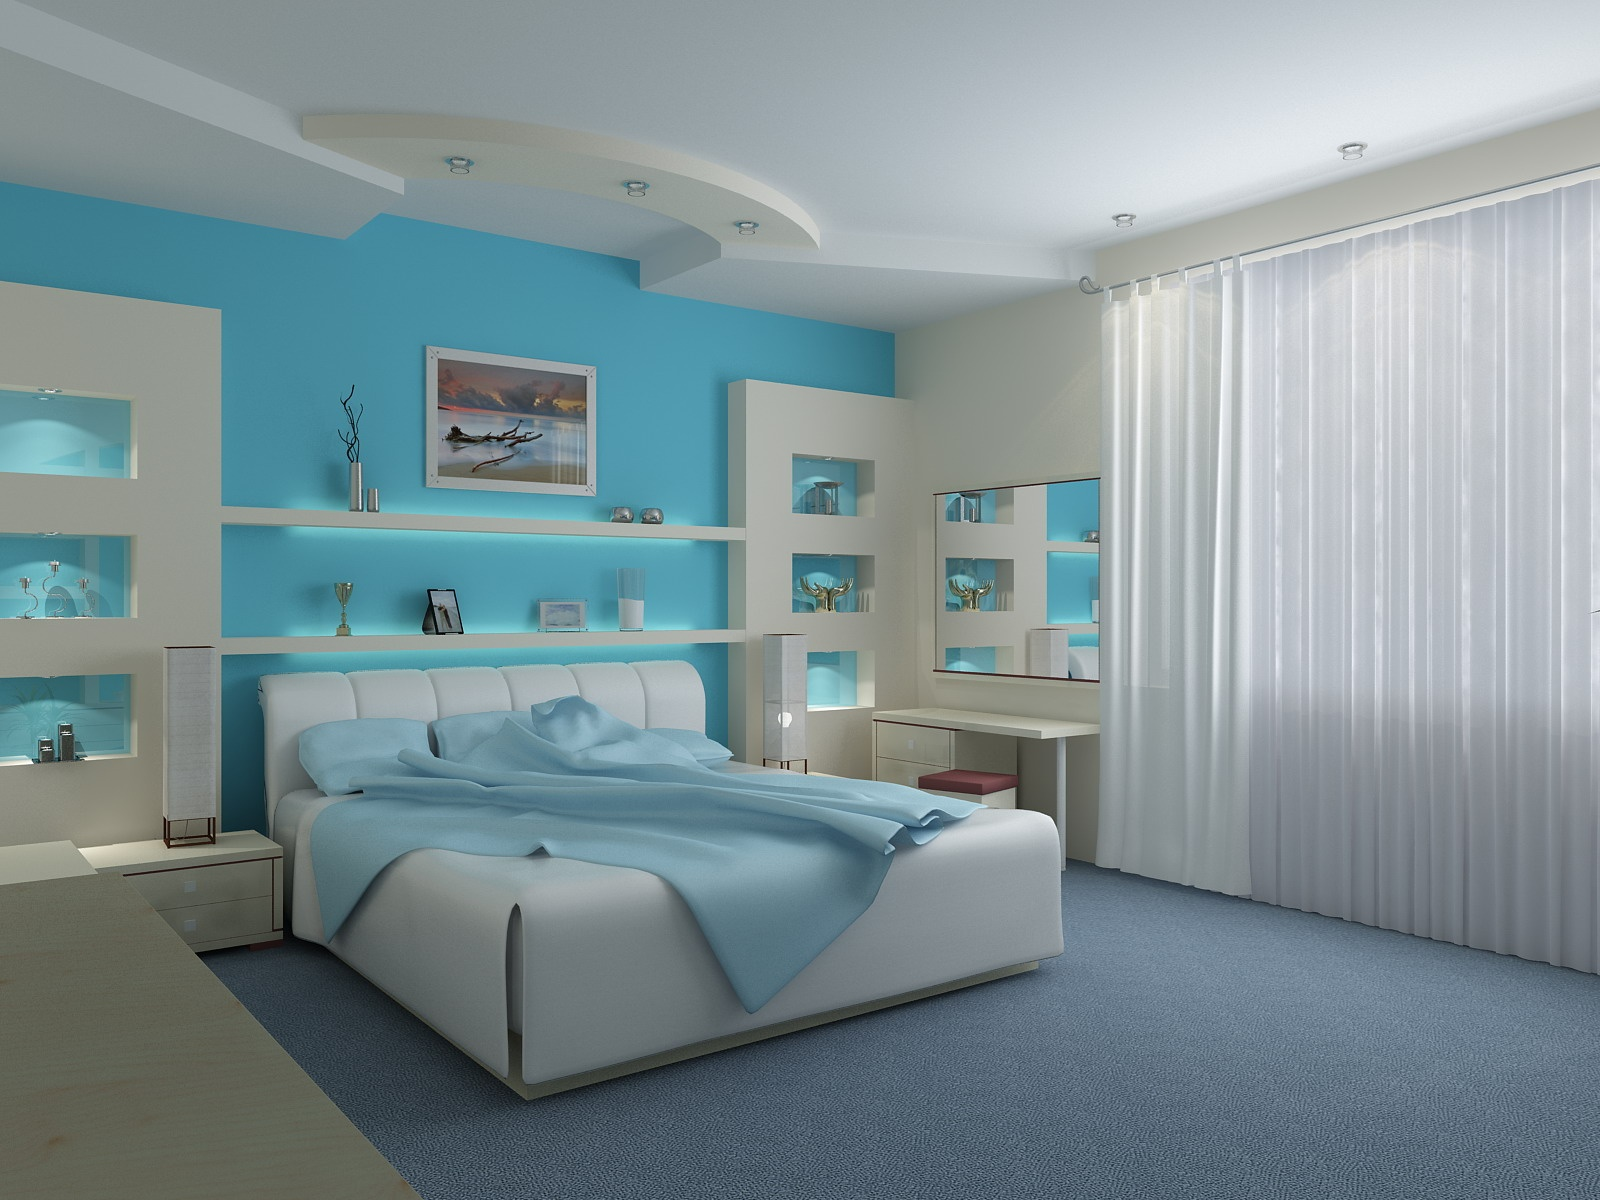 Bedroom Interior Design With Blue  1600 x 1200  Download  Close